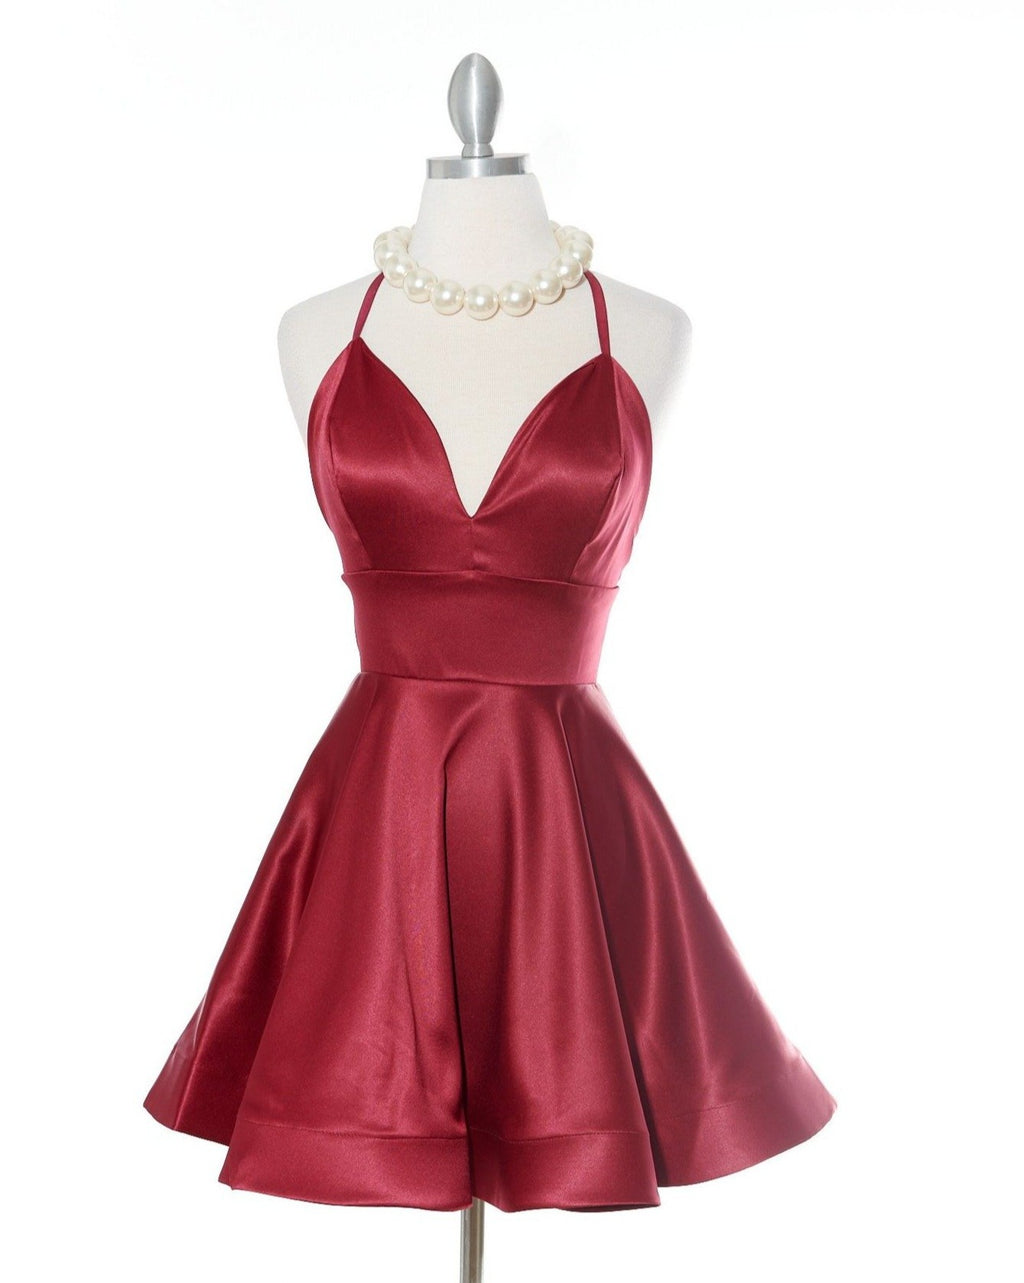 You Flutter Me Burgandy Dress